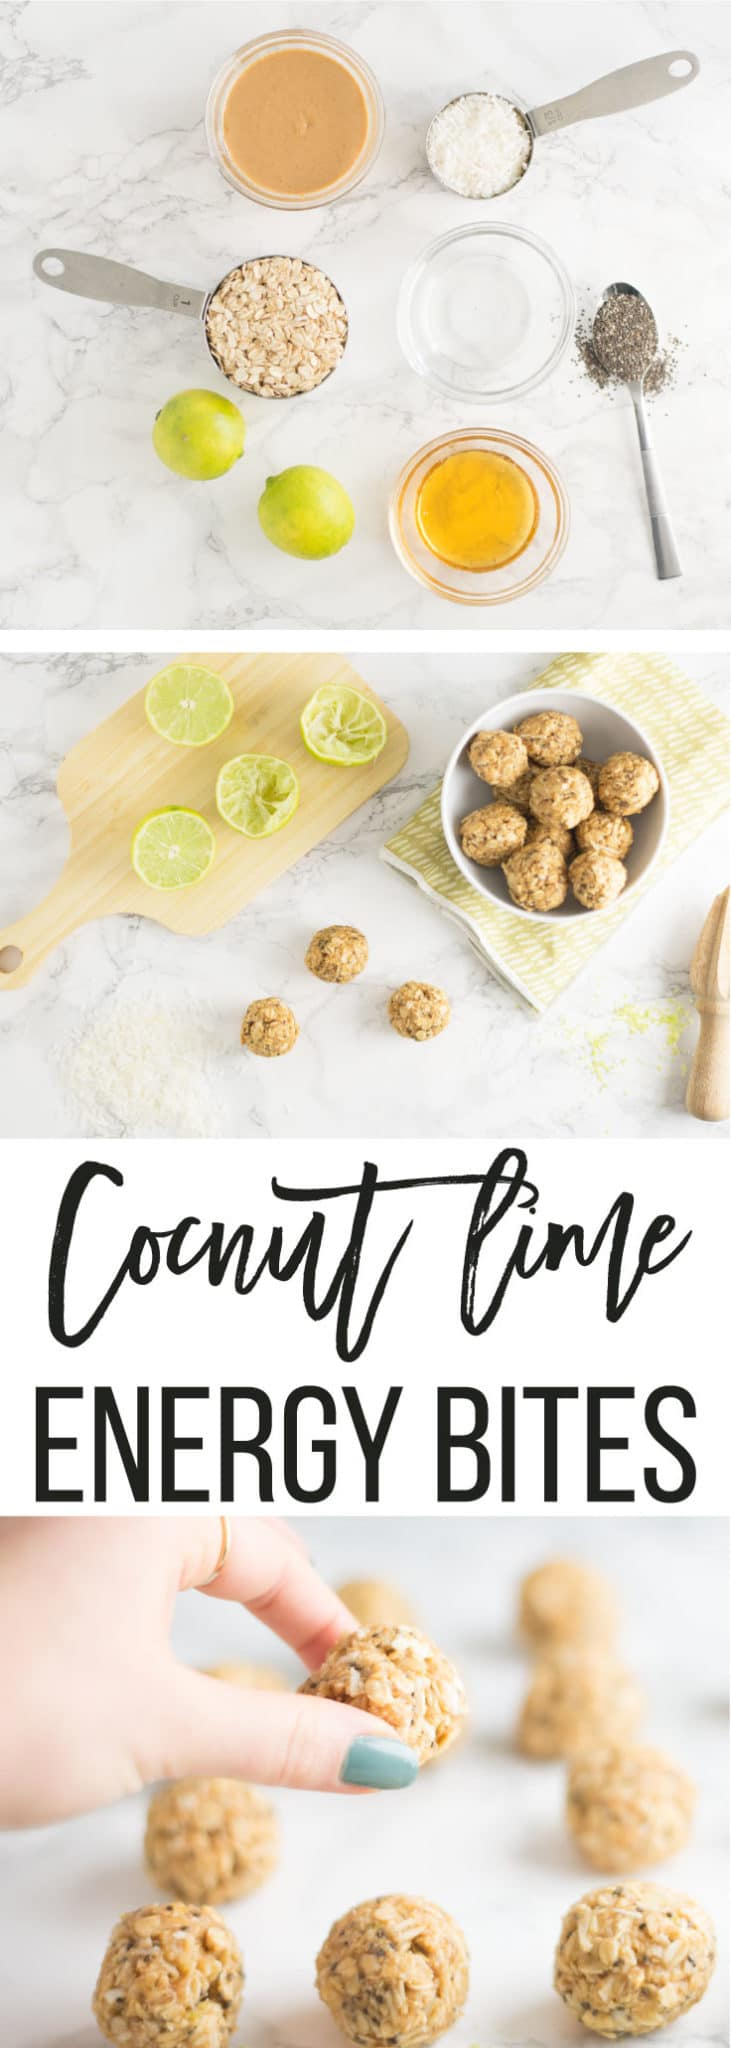 Coconut Lime Energy Bites -- This snack only takes 7 ingredients and is the best vegan and gluten free treat for on the go. #vegansnack #cleaneating #healthy #snacks | mindfulavocado